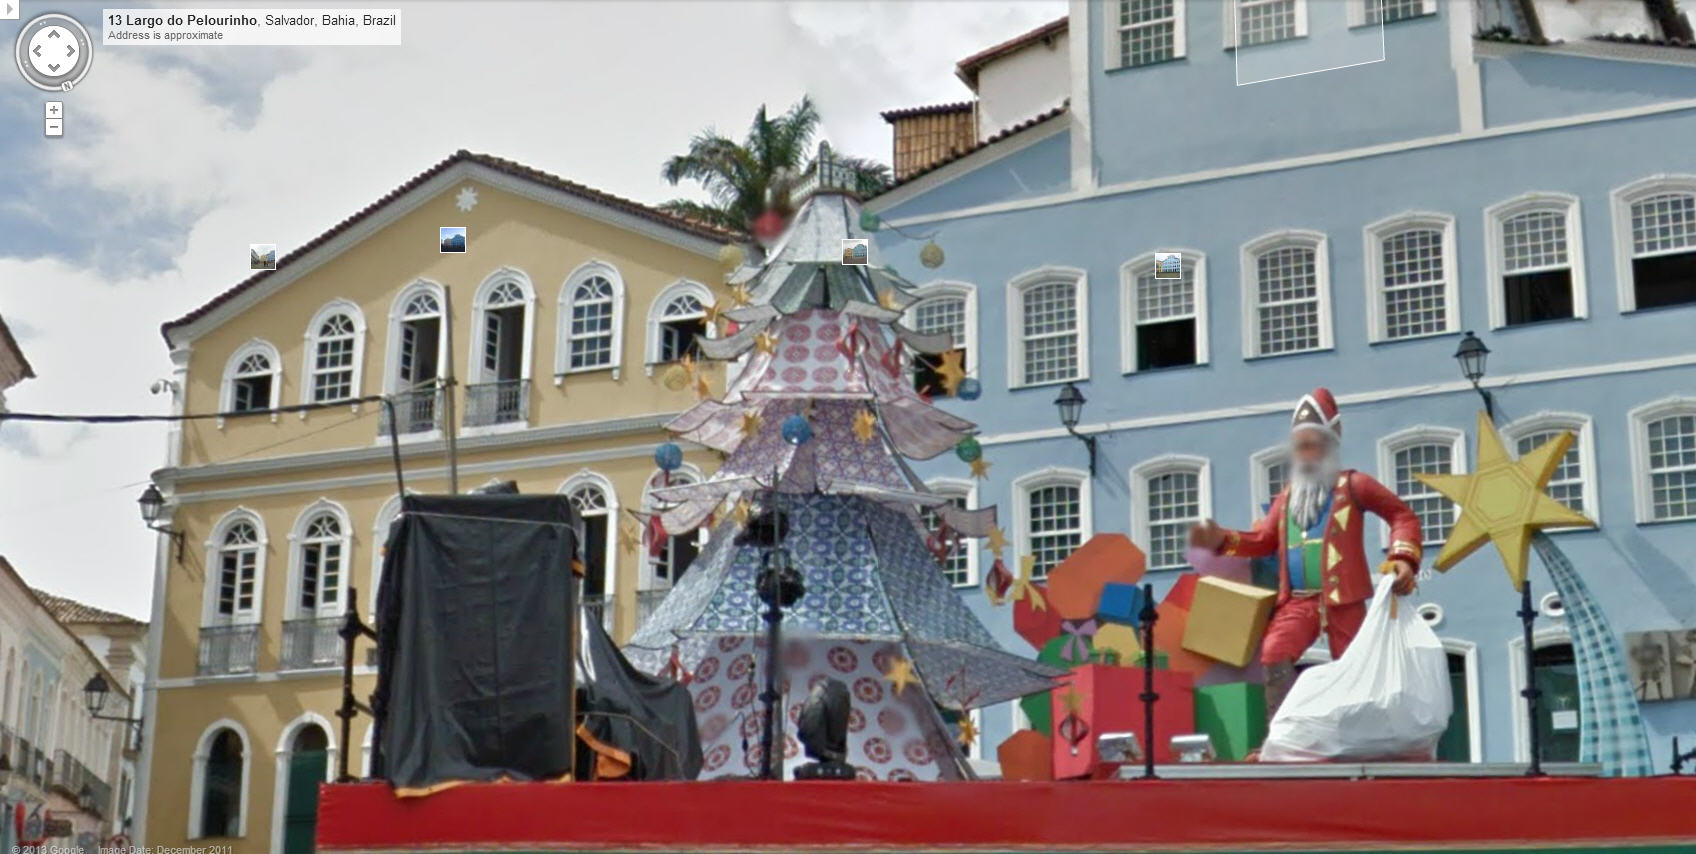 Merry Christmas from a Small Brazilian Village